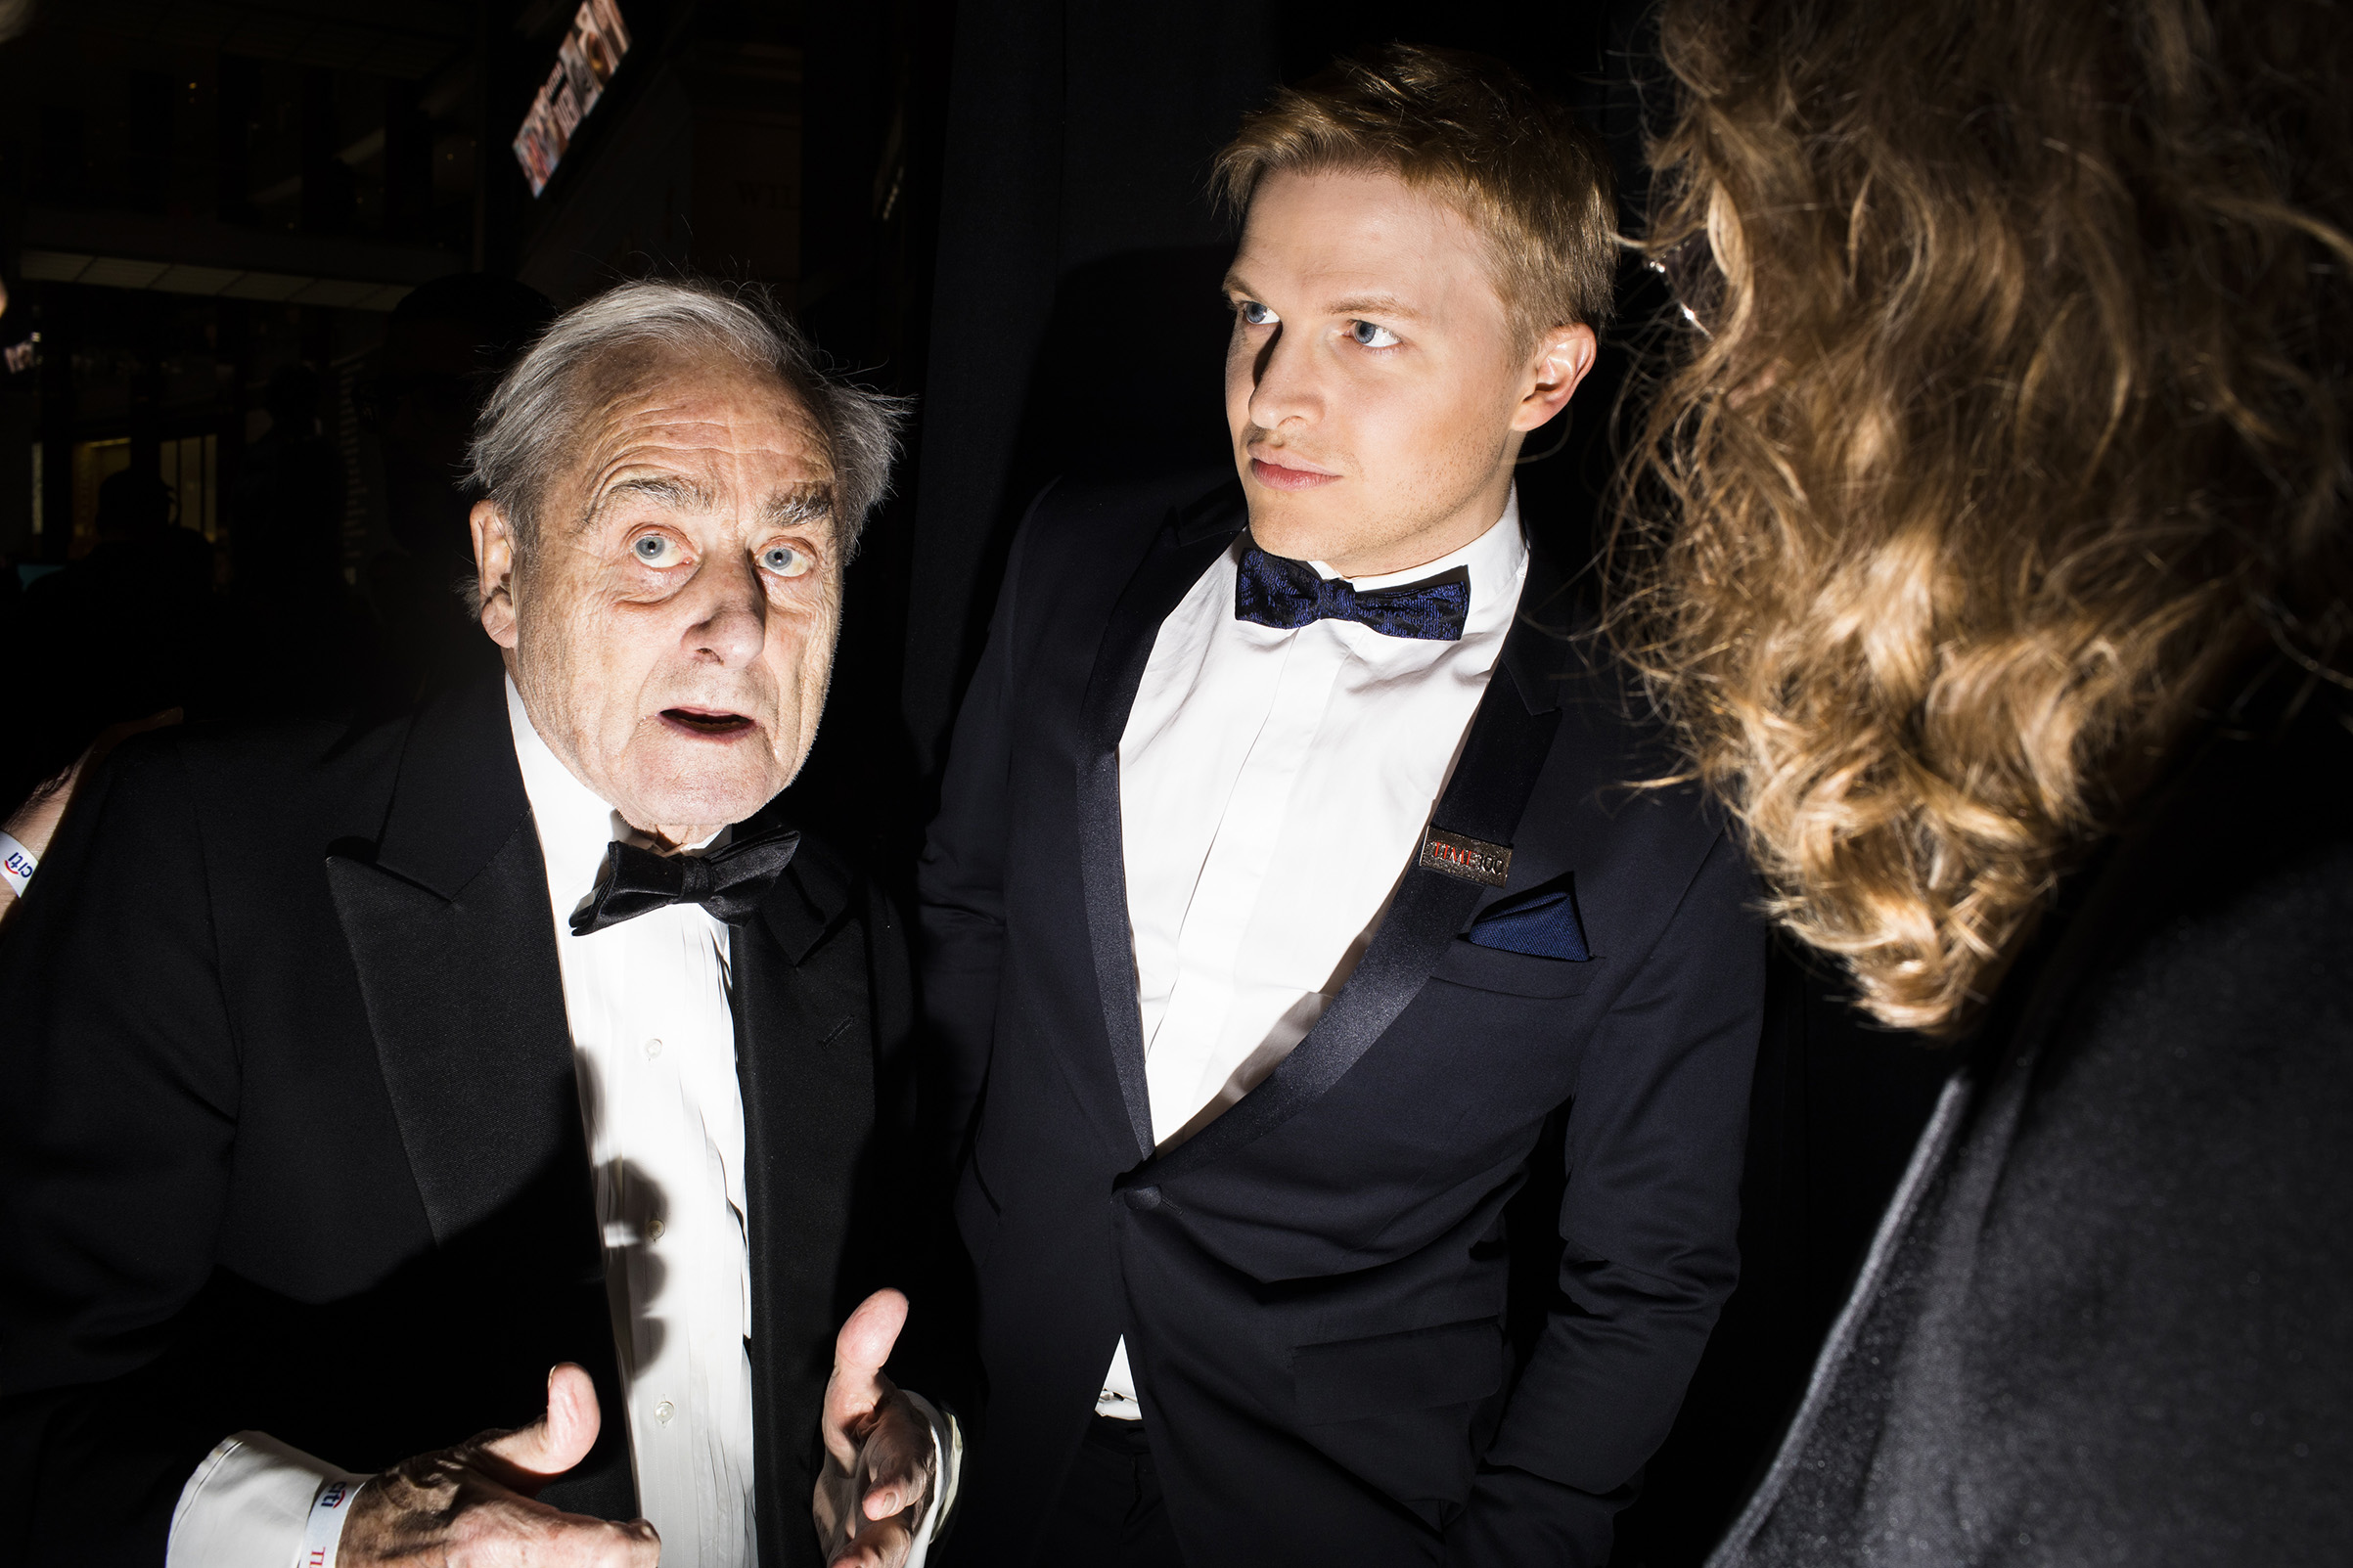 Sir Harold Evans, left, and Ronan Farrow, center, at the Time 100 Gala at Jazz at Lincoln Center on April 24, 2018 in New York City.